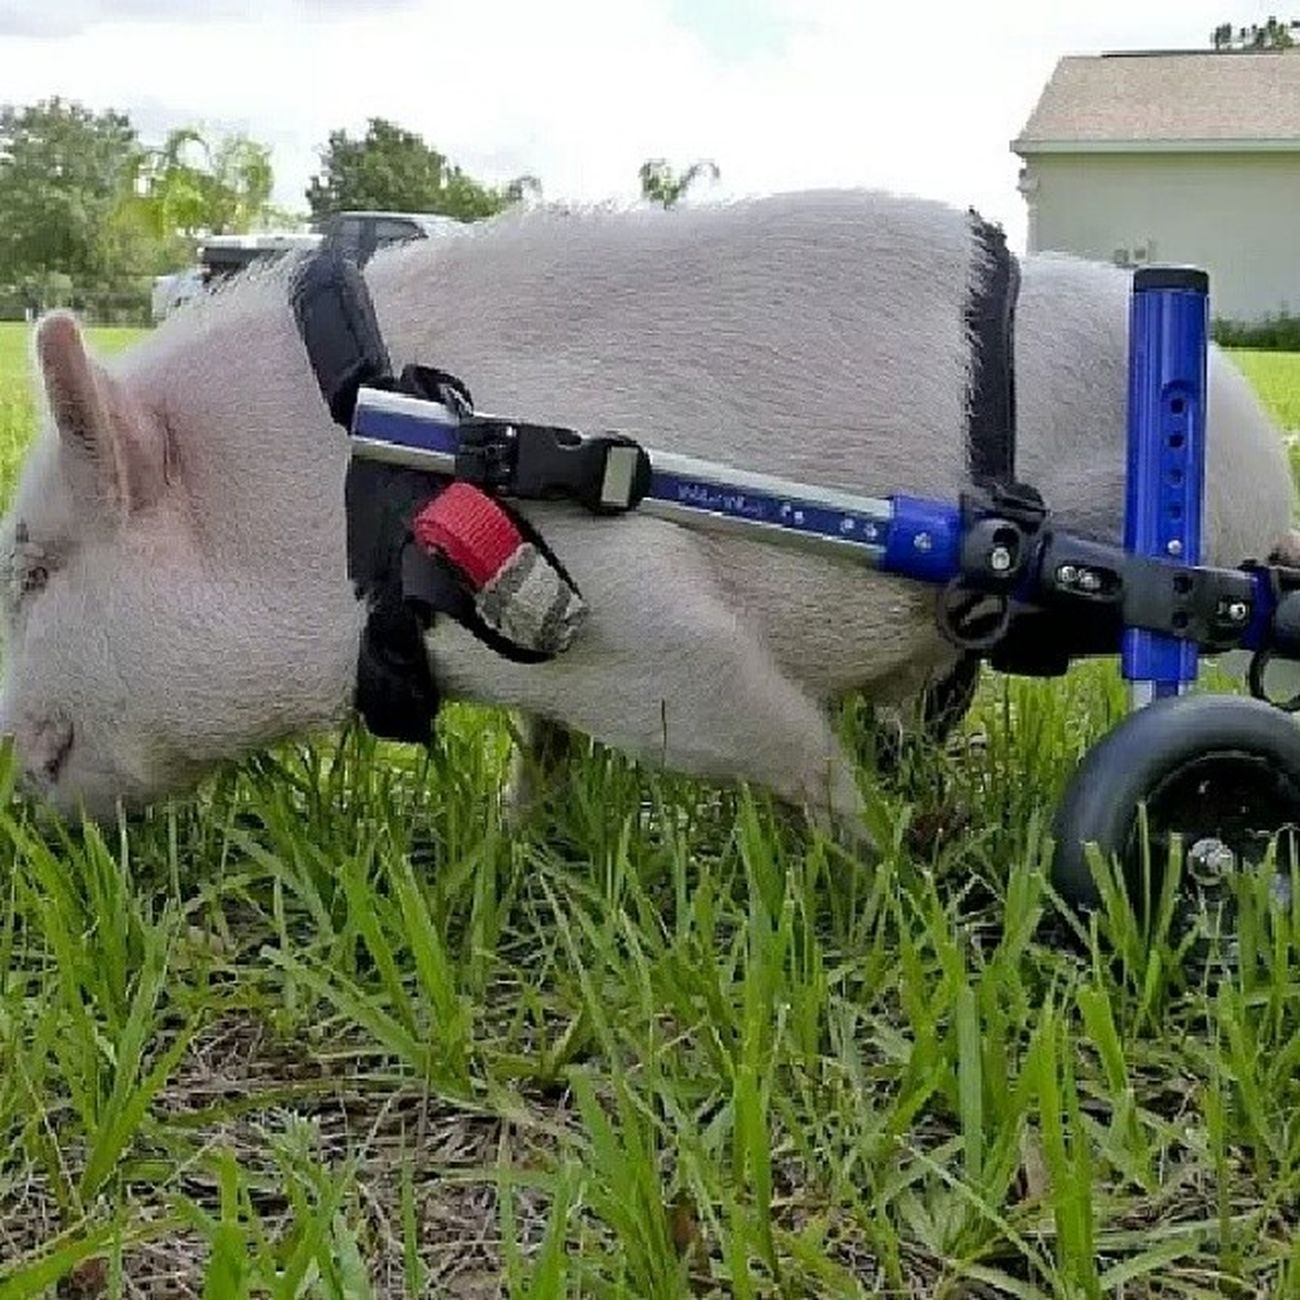 Don't know what to think about this, seeing that I had bacon this morning. Lol 2leggedpig Cute ? Sad